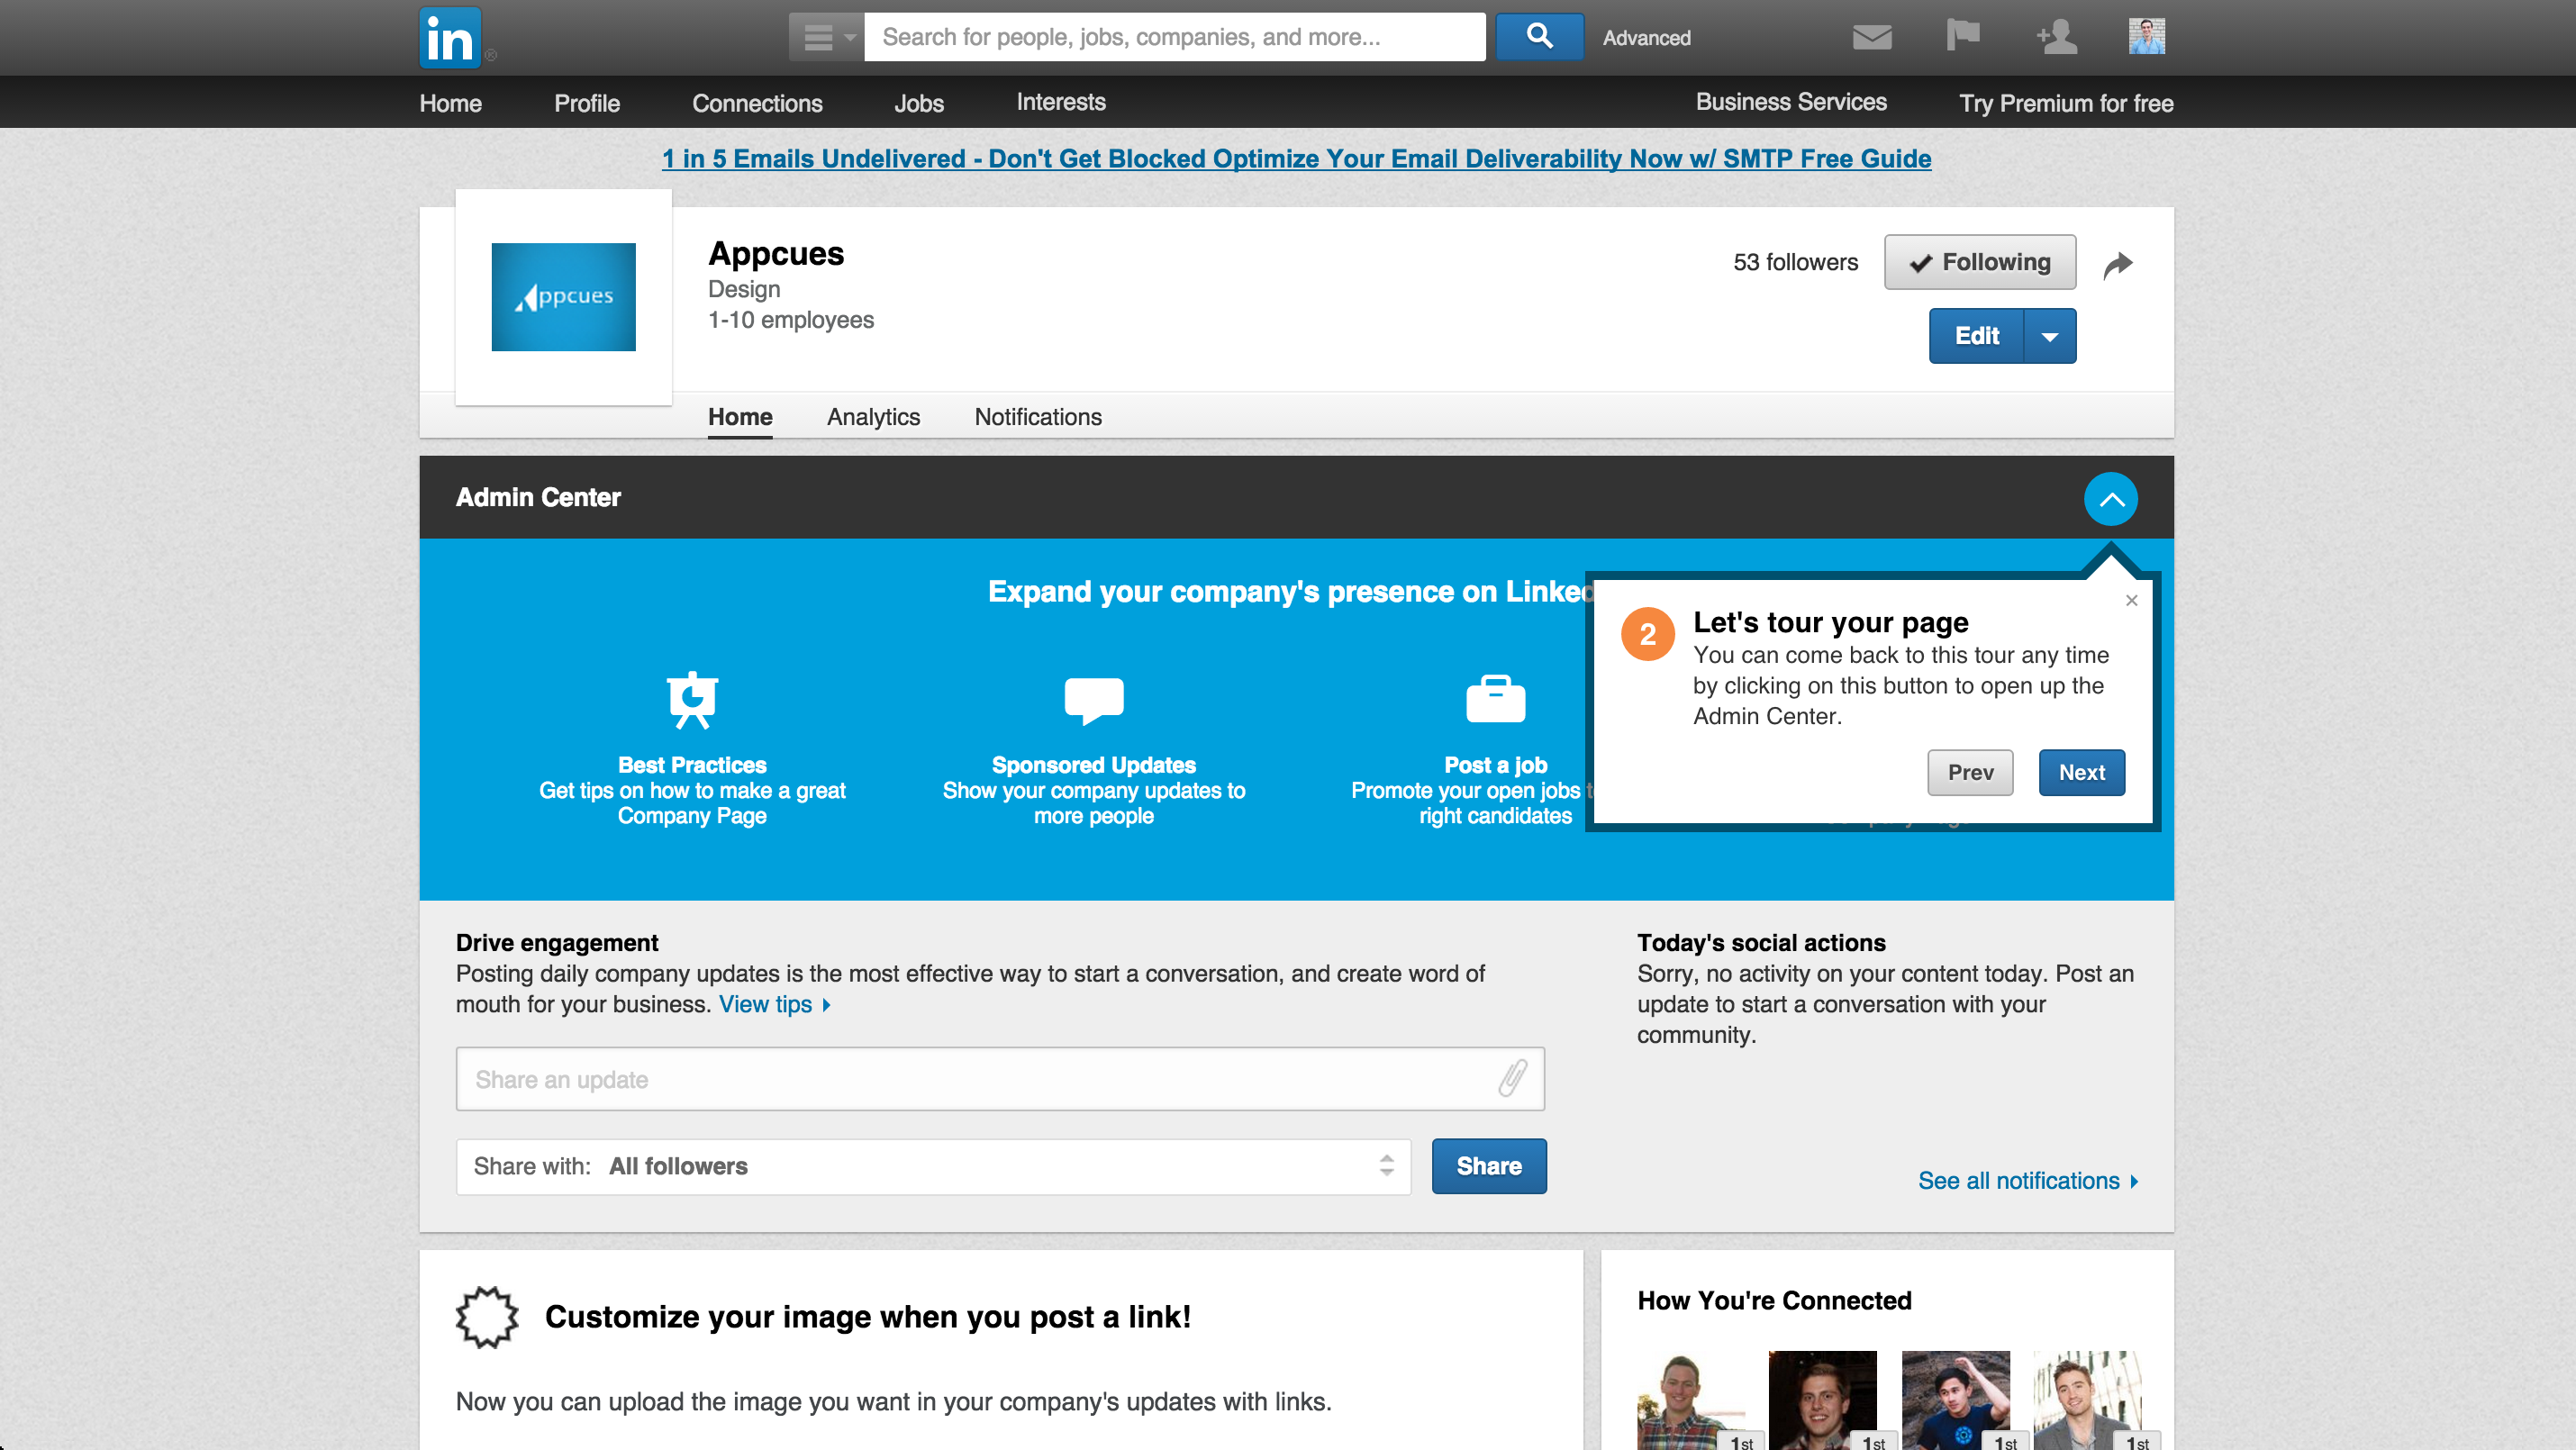 LinkedIn product tour company page 2